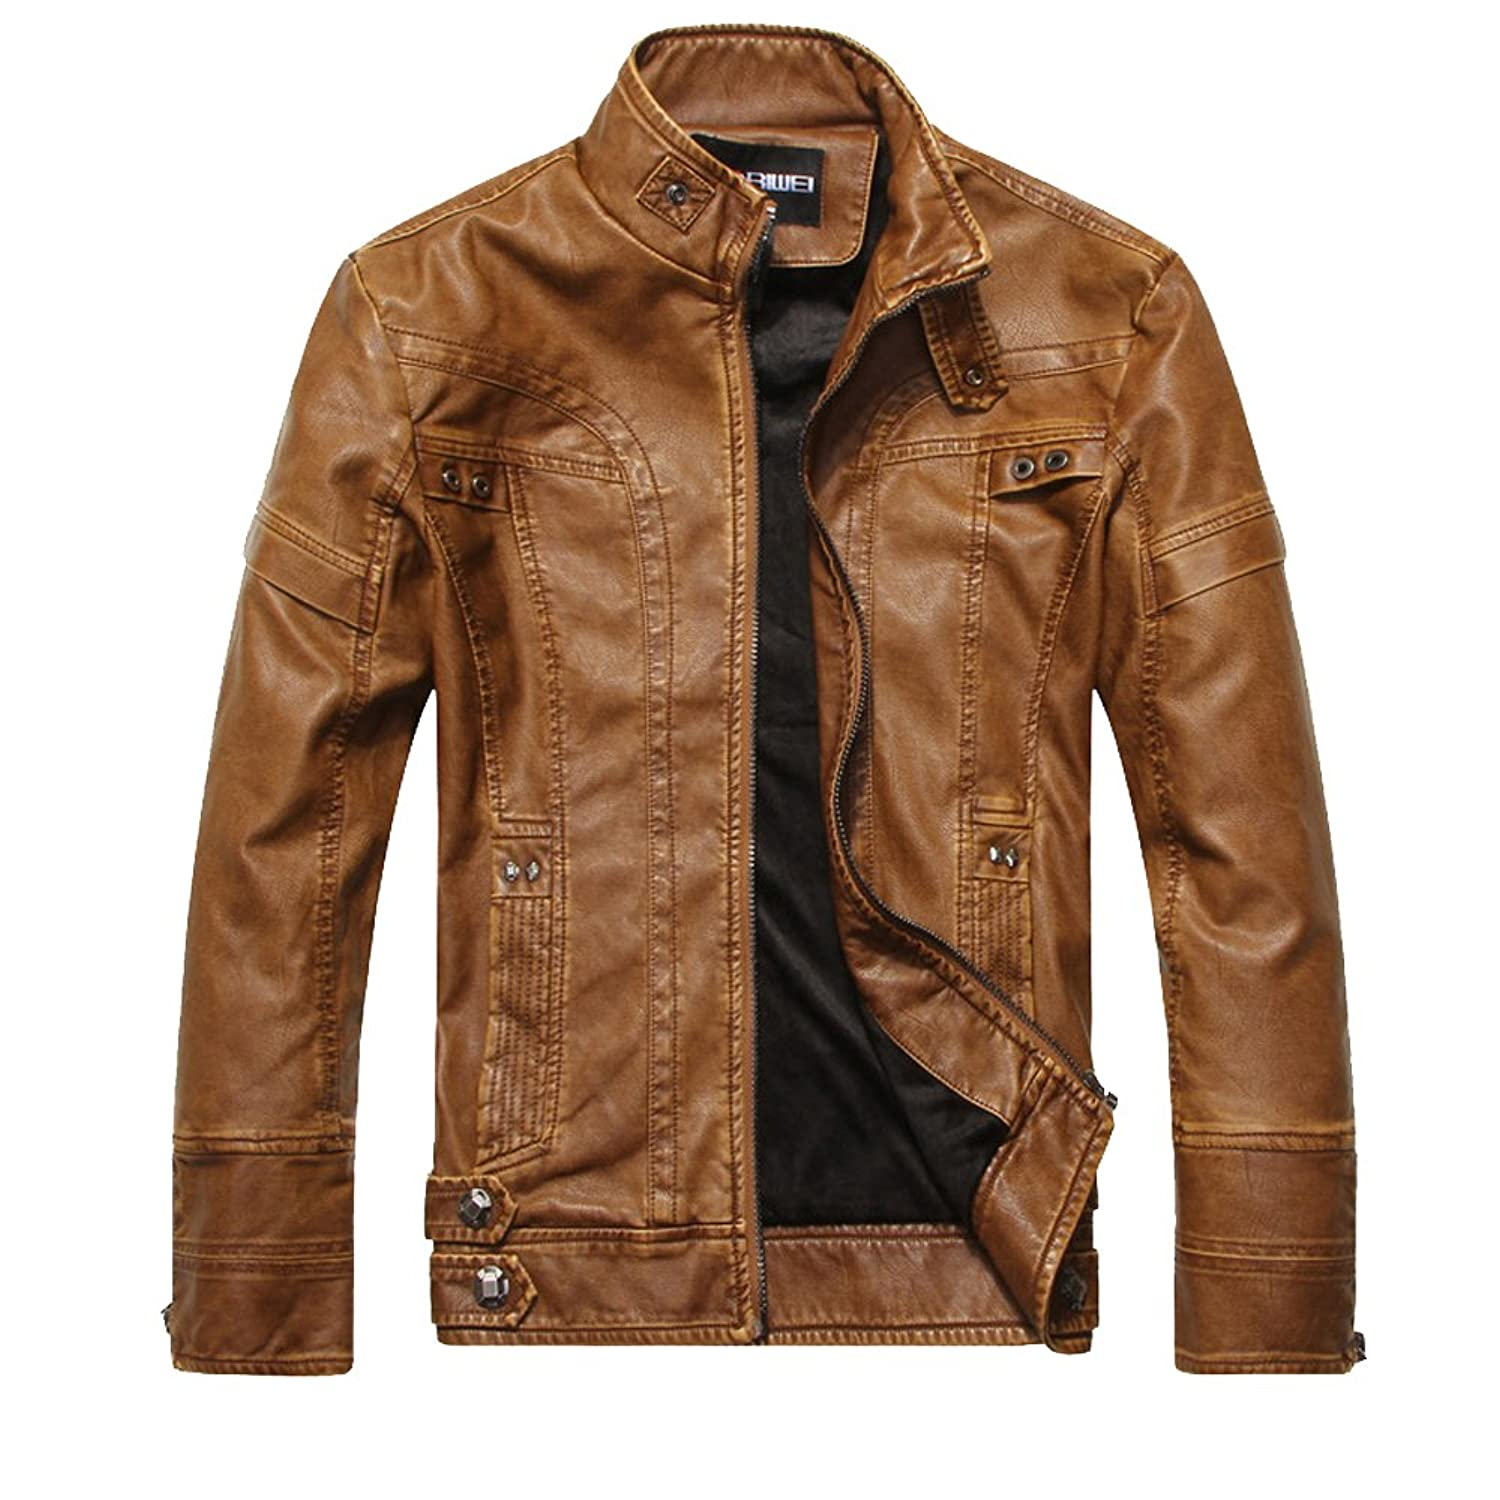 TEERFU Men's Vintage Stand Collar Pu Leather Coat Classic Motorcycle Jacket